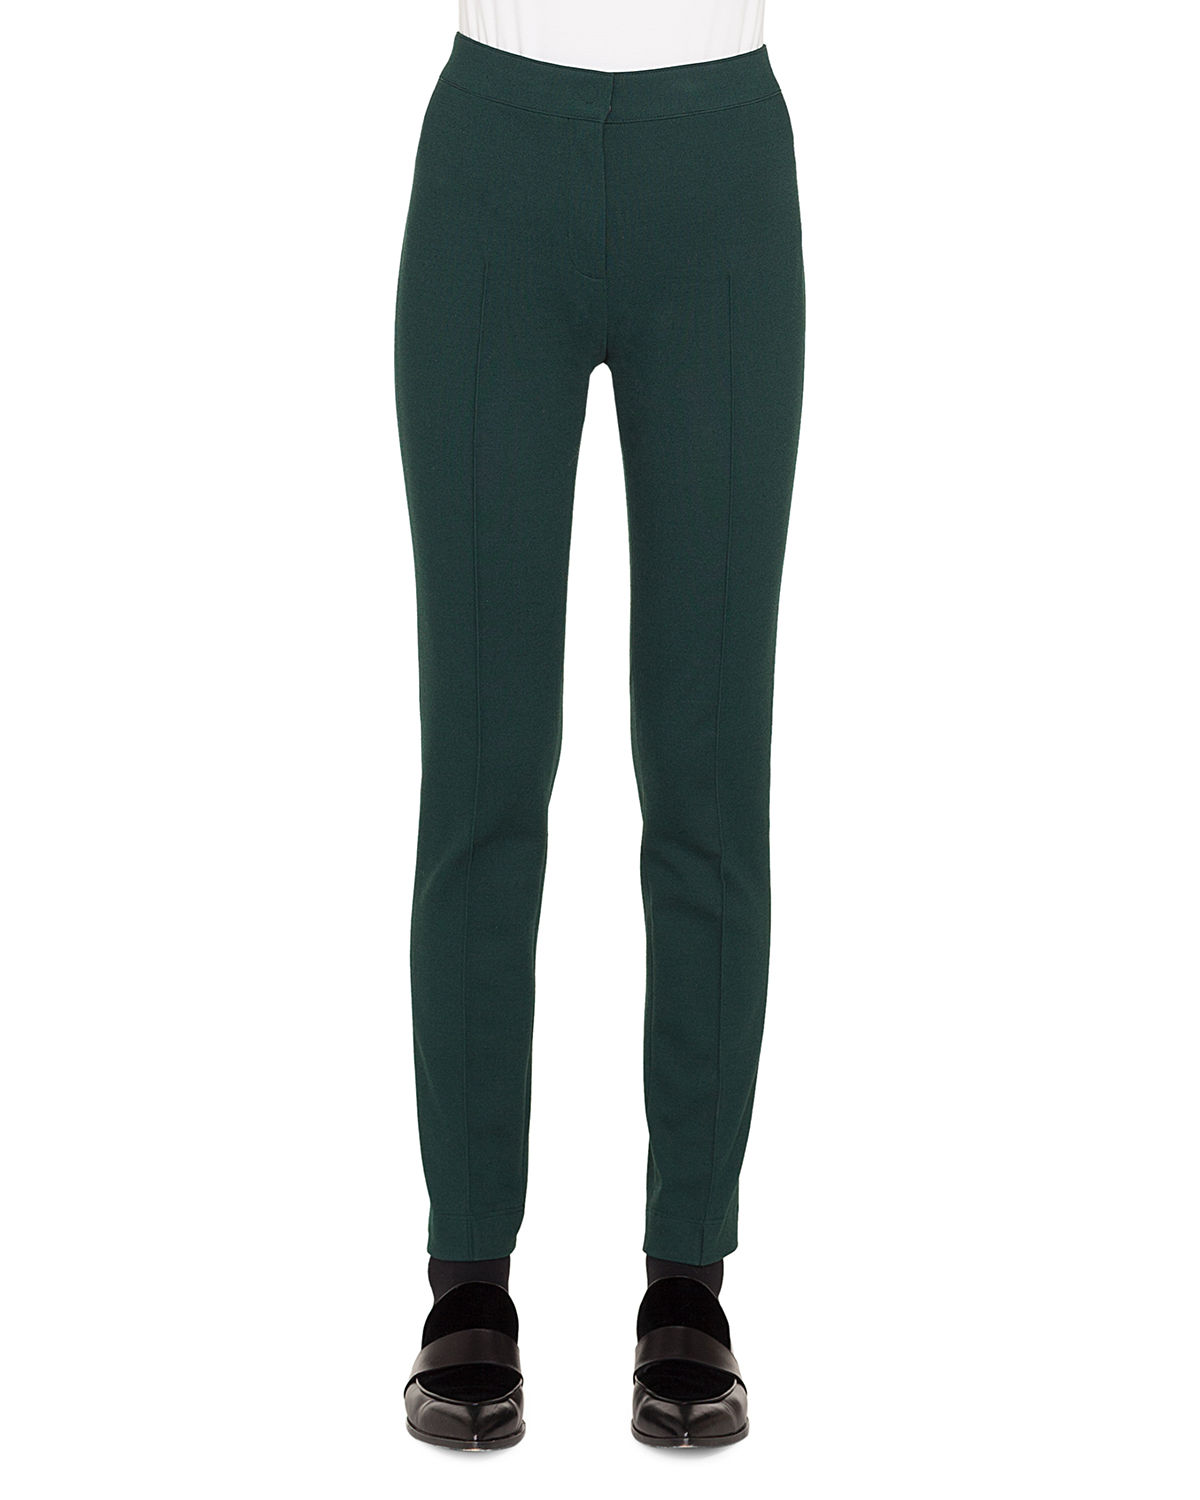 Mara Skinny Stretch-Melange Pants